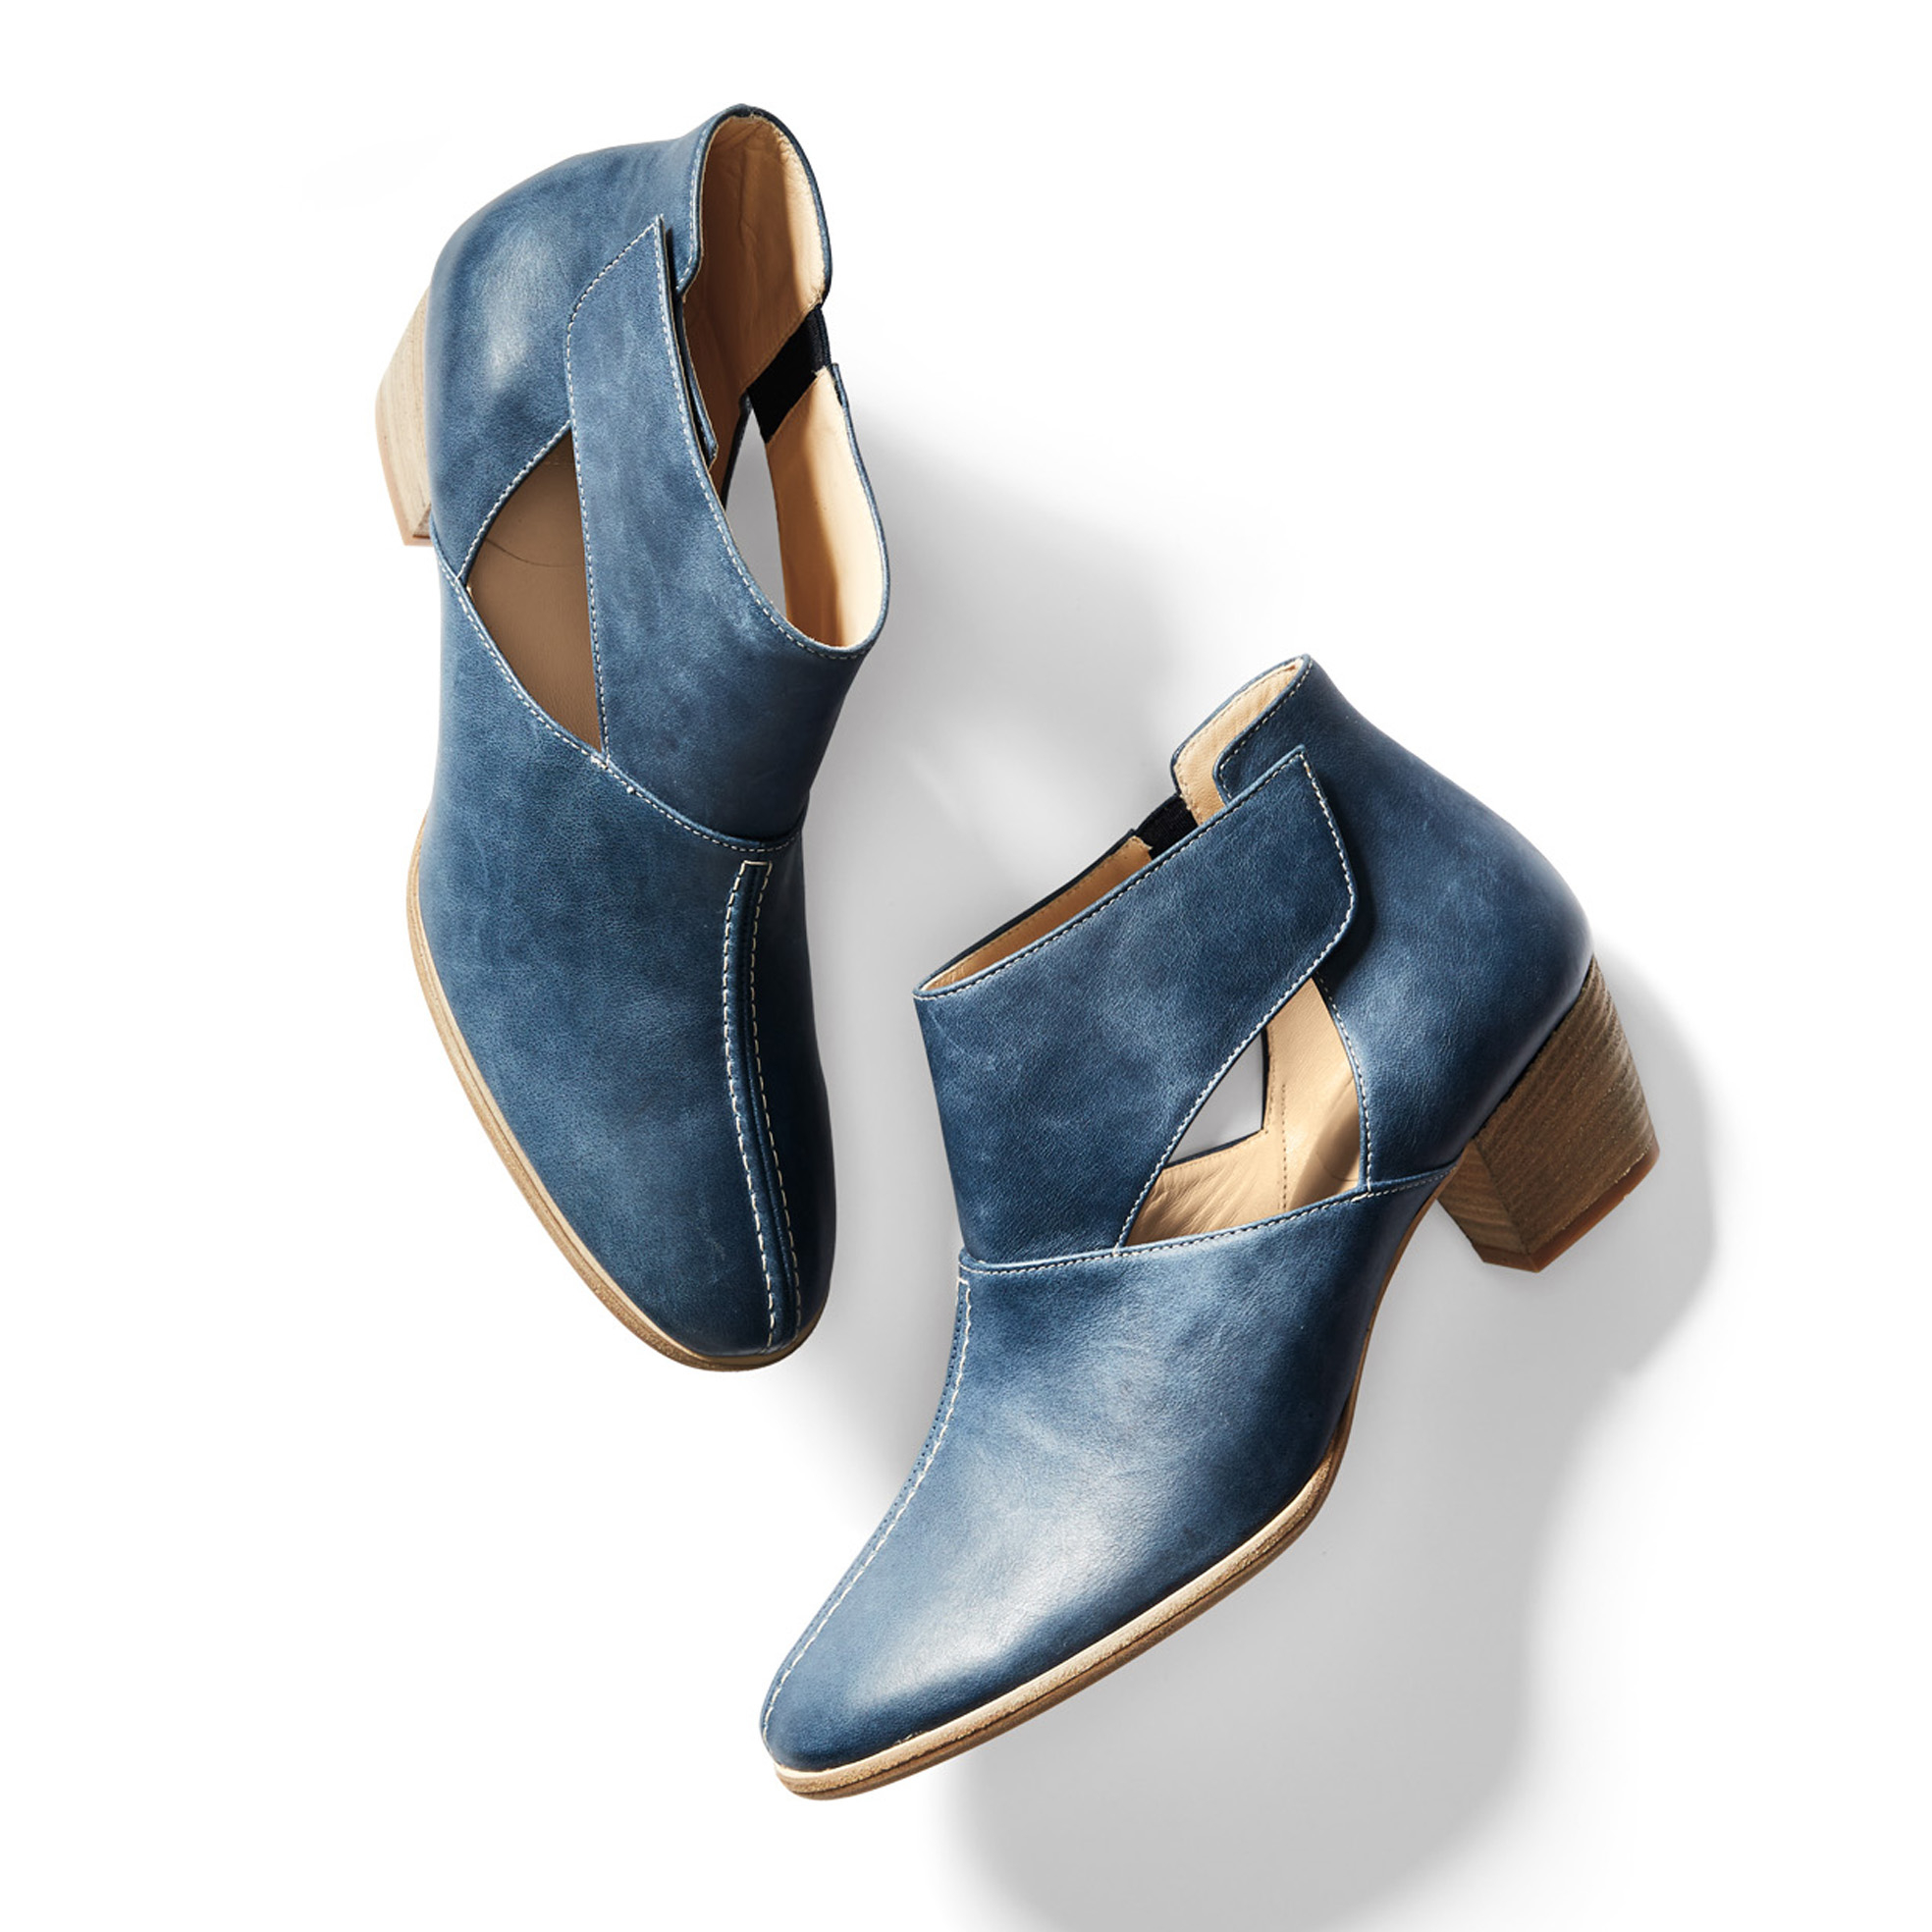 Classic ankle boots - amalfi navy